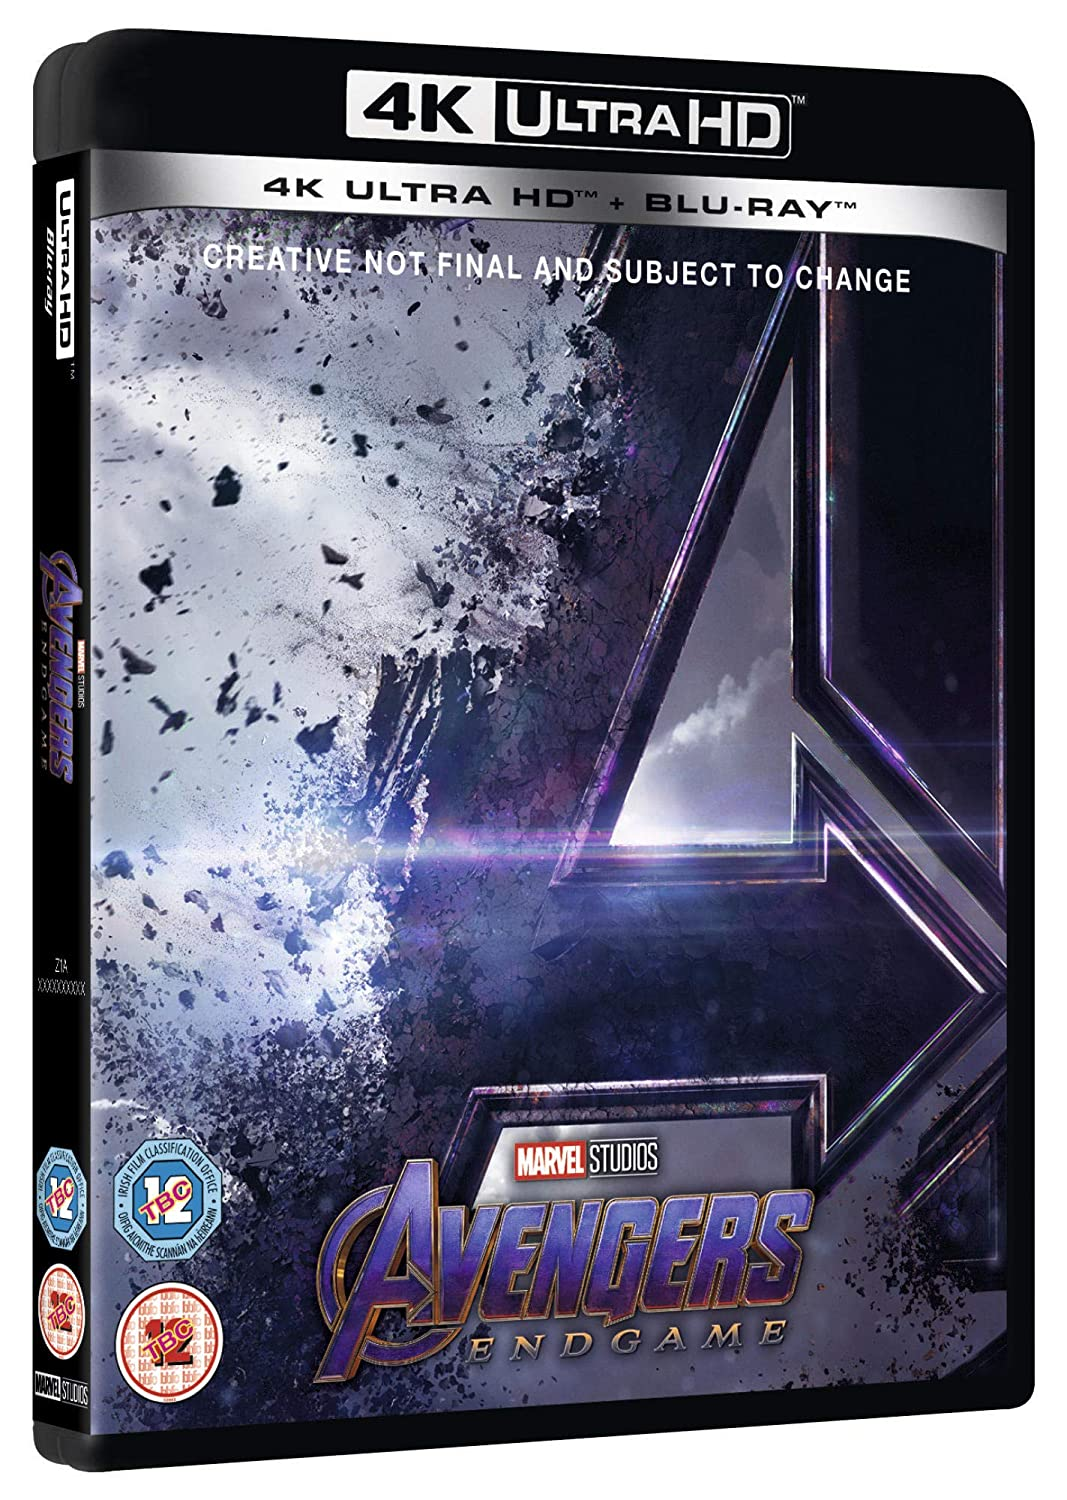 Avengers Endgame Blu-ray + 4K UHD 2019 Region Free: Amazon co uk